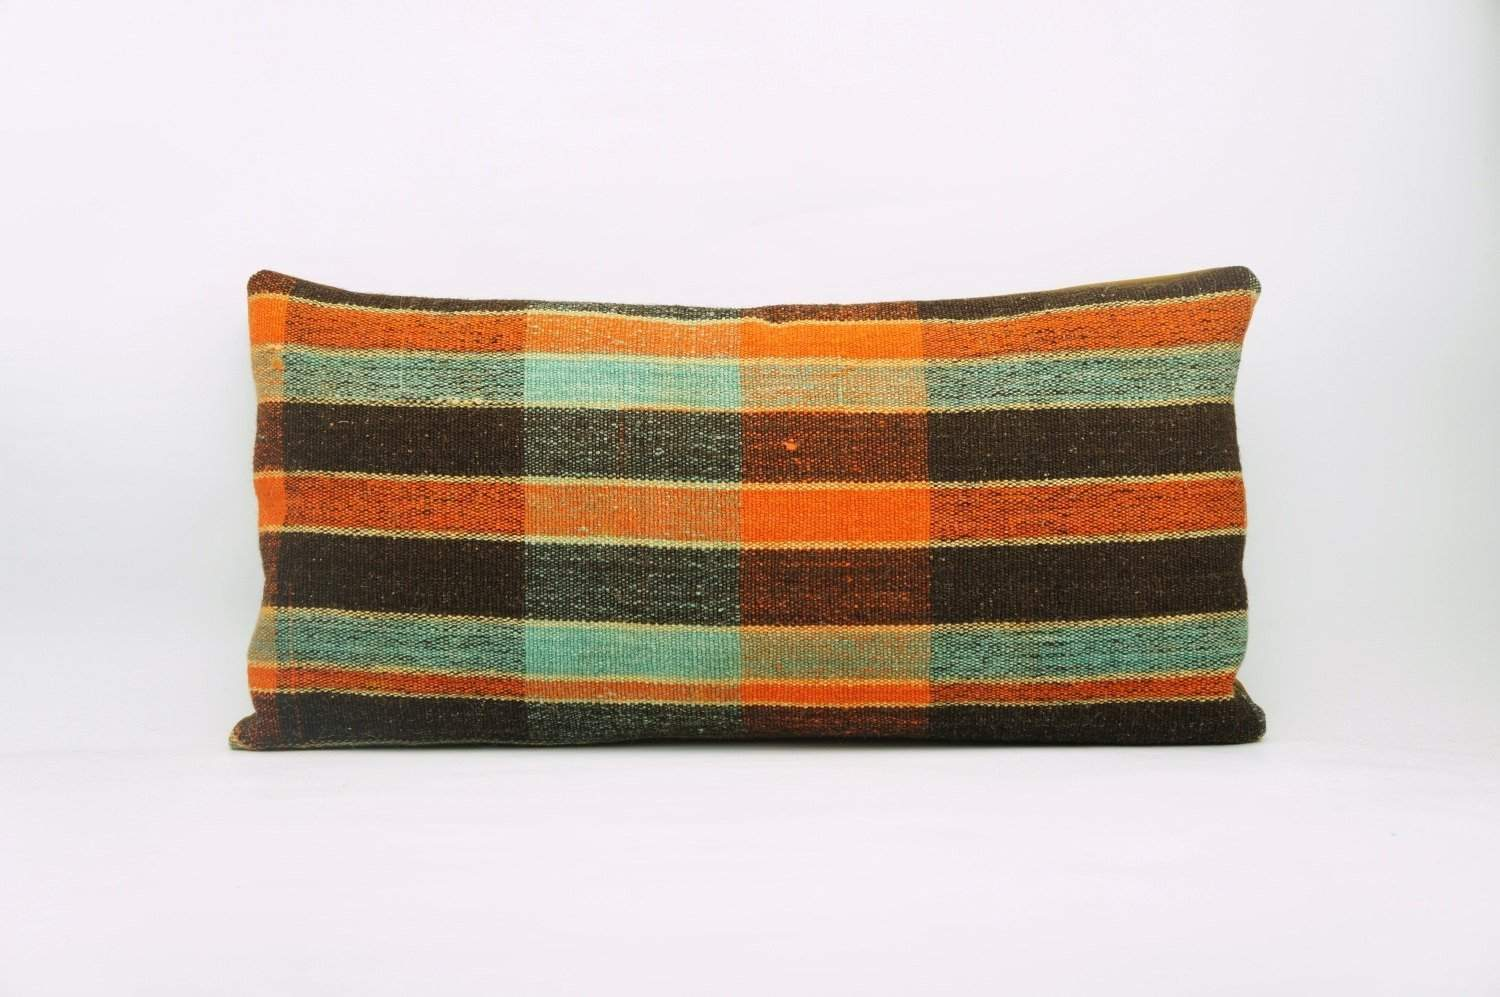 12x24 Vintage Hand Woven Kilim Pillow Lumbar Bohemian pillow case, 972